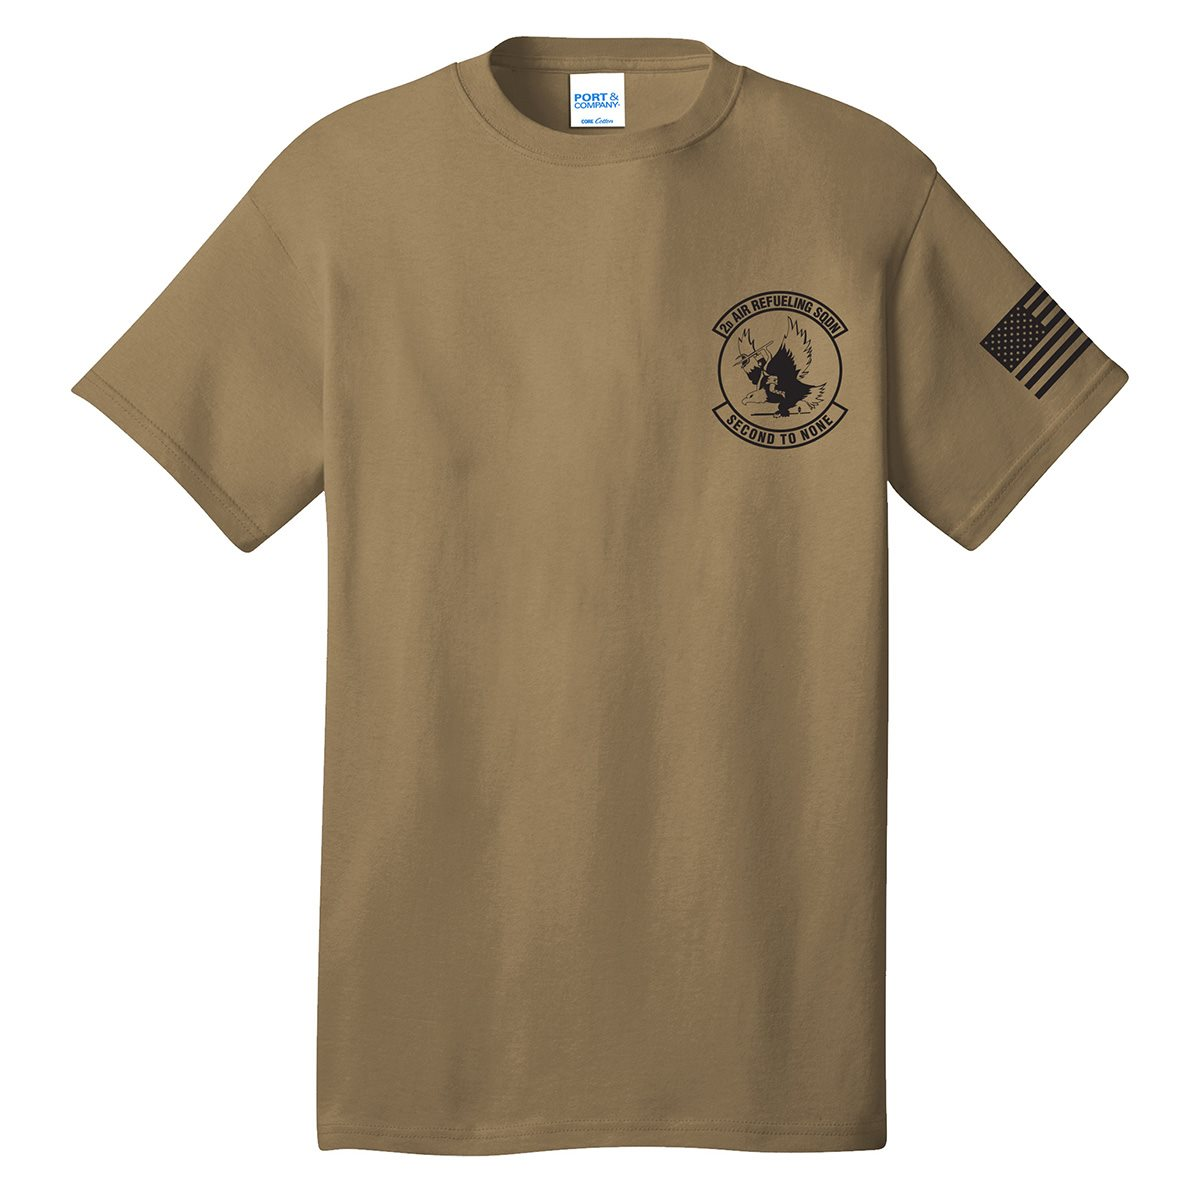 2 ARS PC54 Coyote Brown Shirt.jpg?quality=85